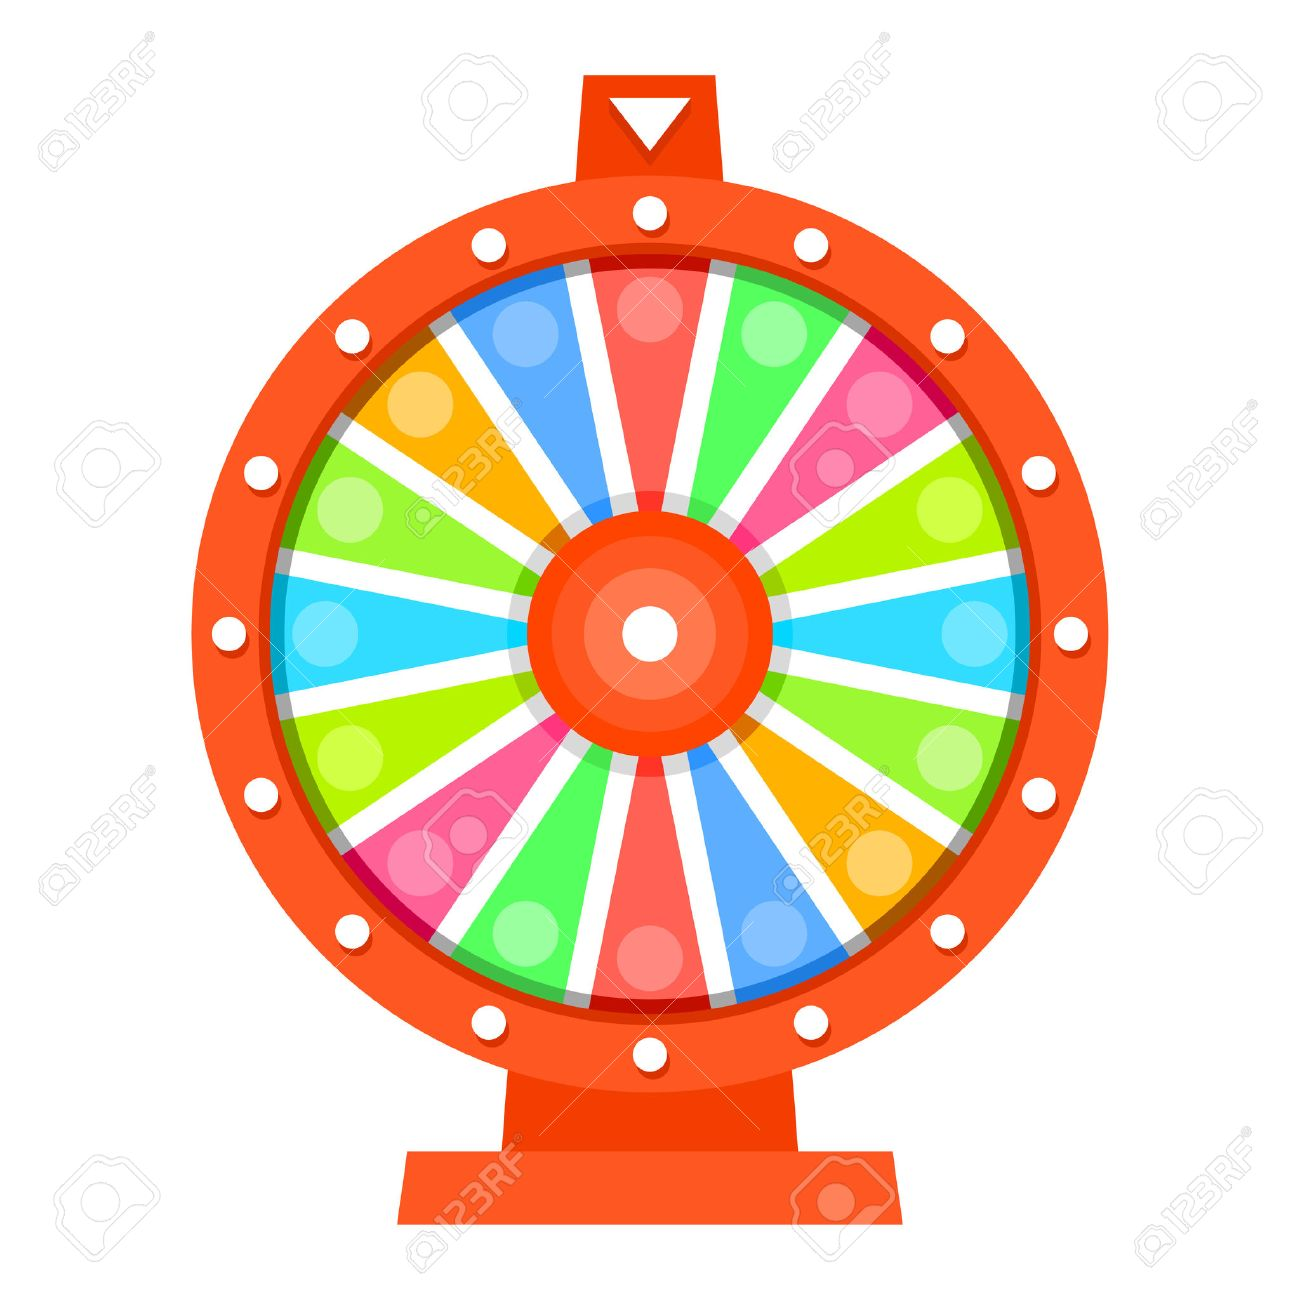 wheel of fortune flat design template royalty free cliparts vectors